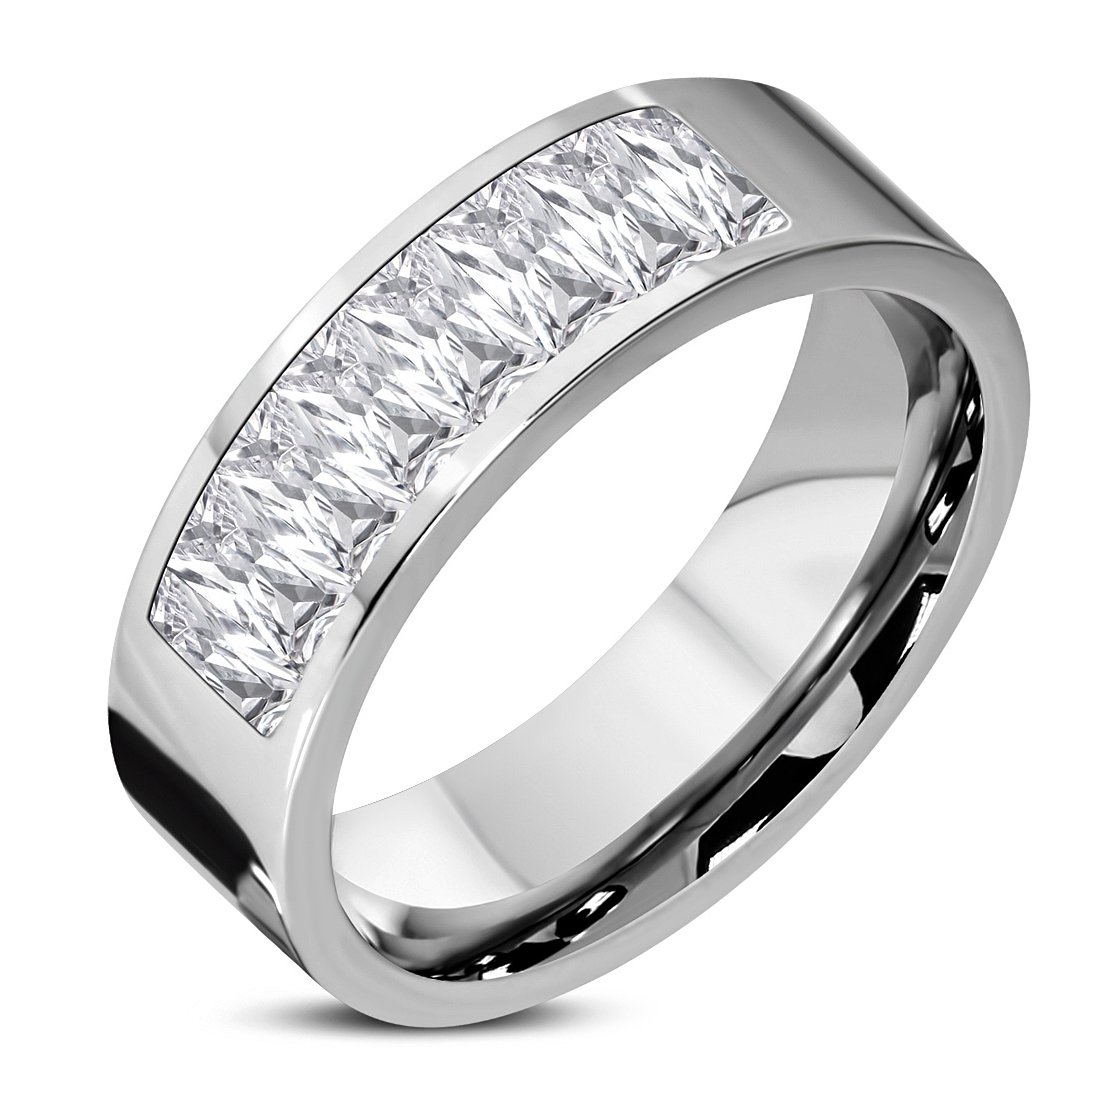 Stainless Steel Channel-Set Comfort Fit Wedding Flat Band Ring with Baguette Clear CZ